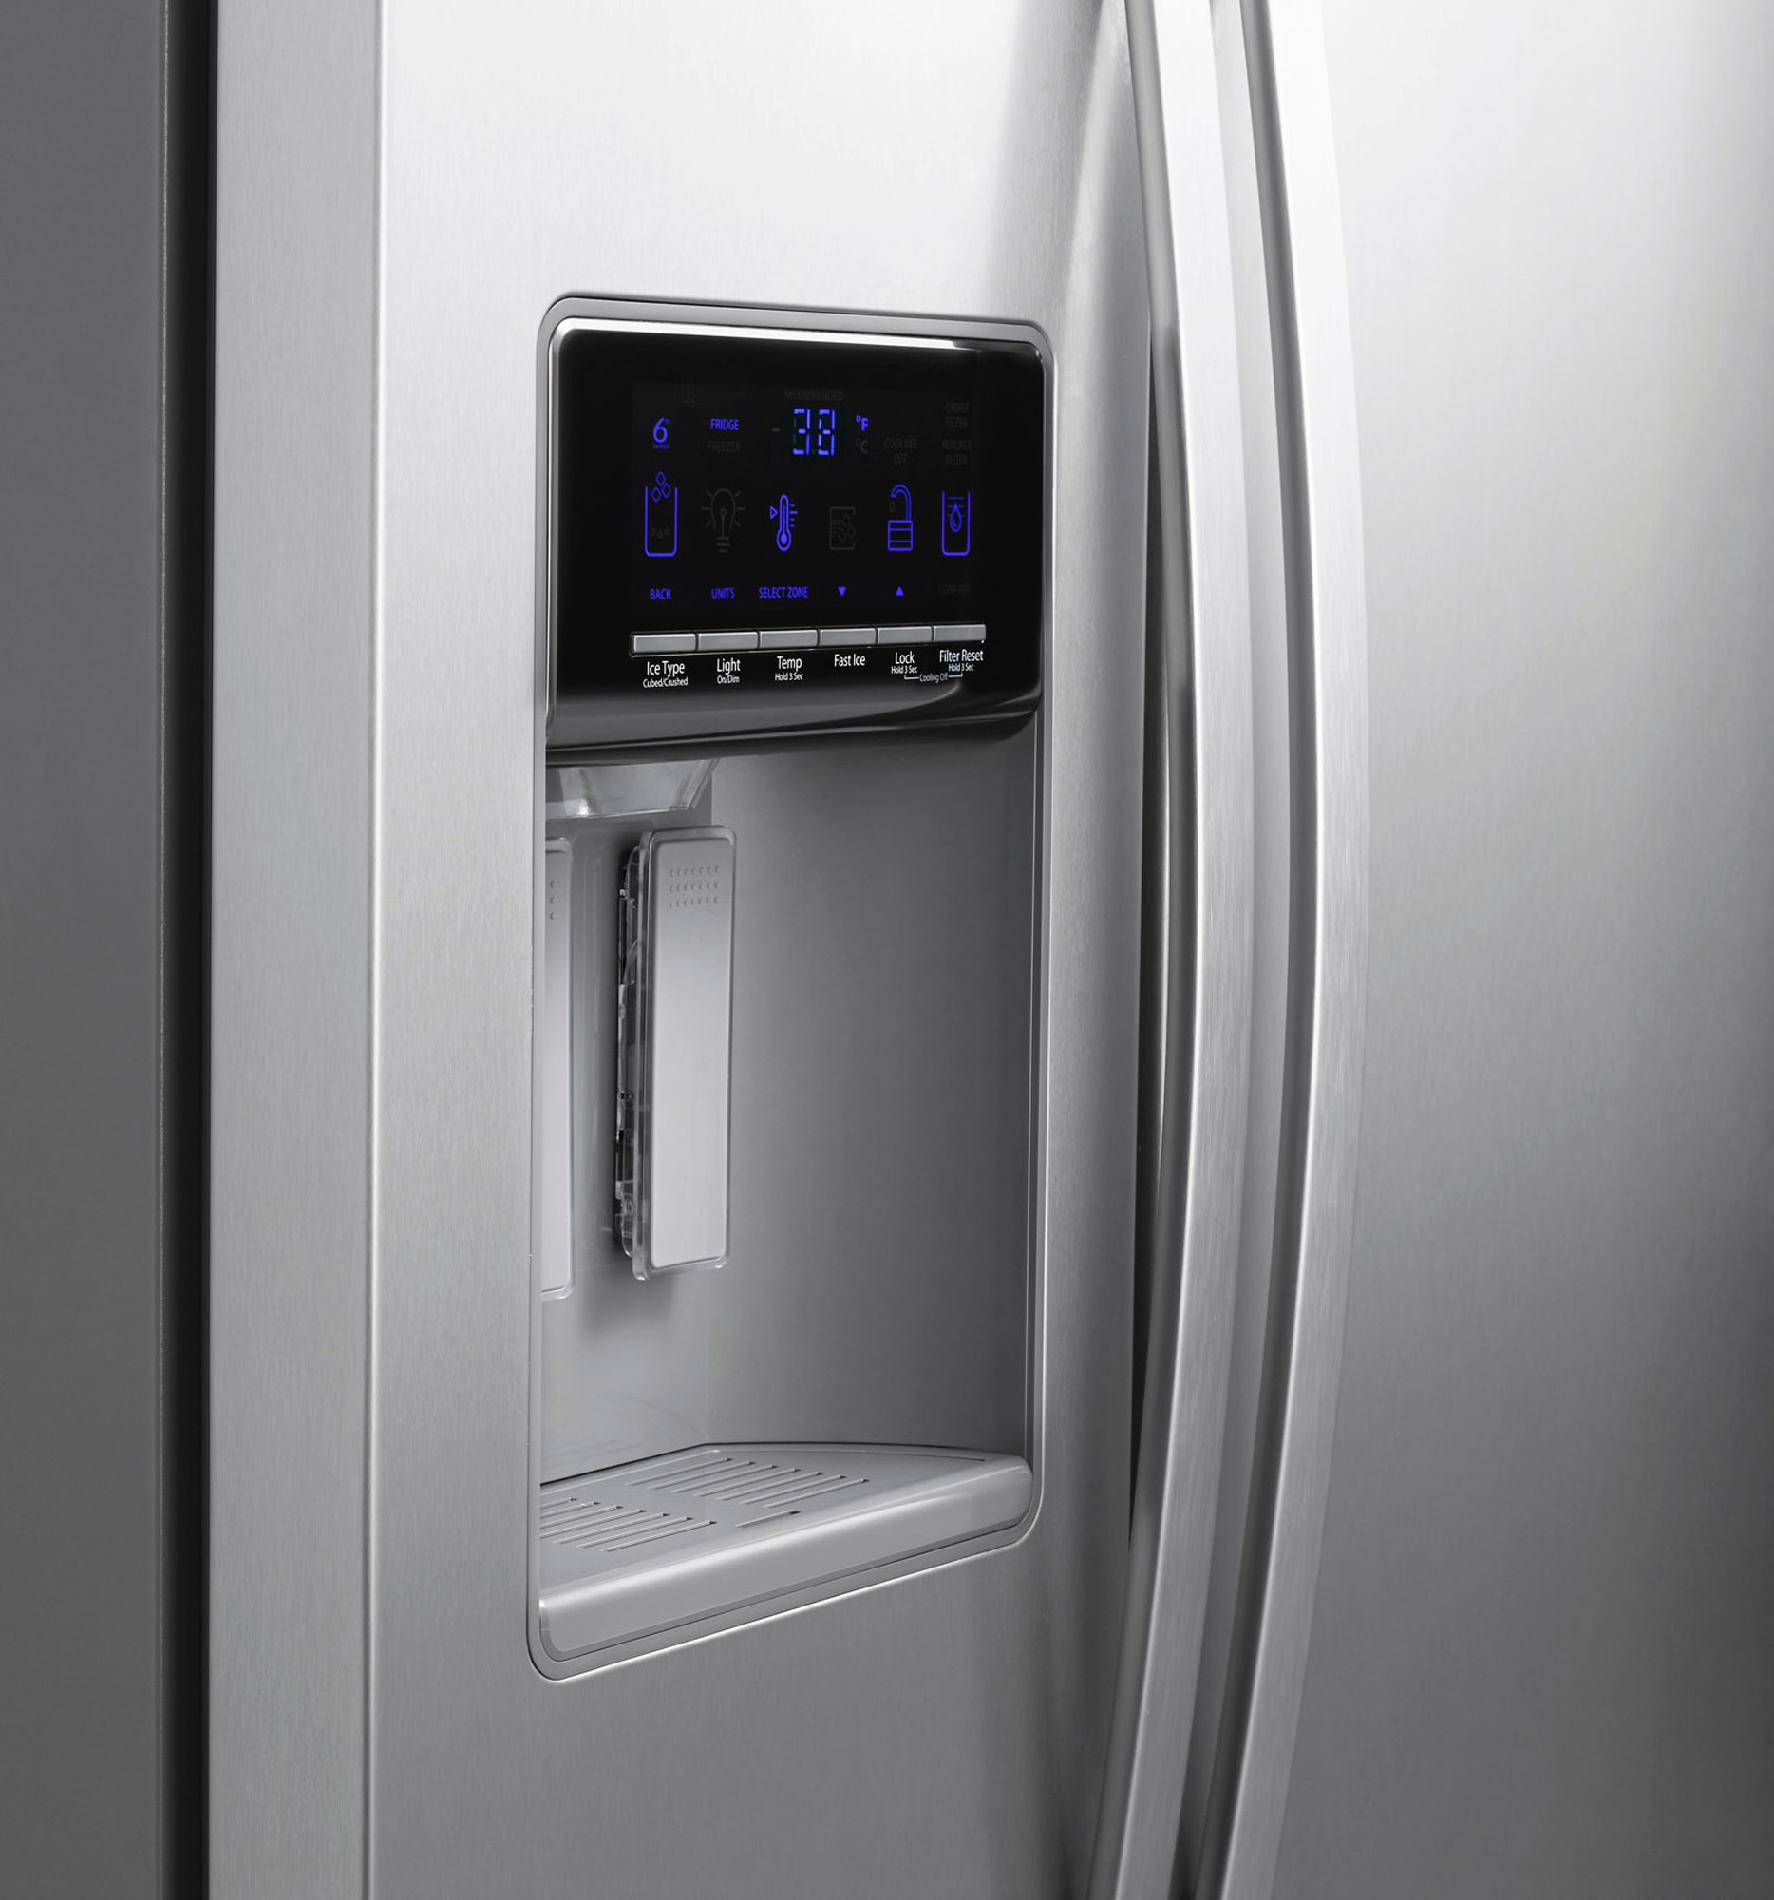 Whirlpool WRS576FIDM 26 cu. ft. Side-by-Side Refrigerator w/ Exterior Controls - Stainless Steel